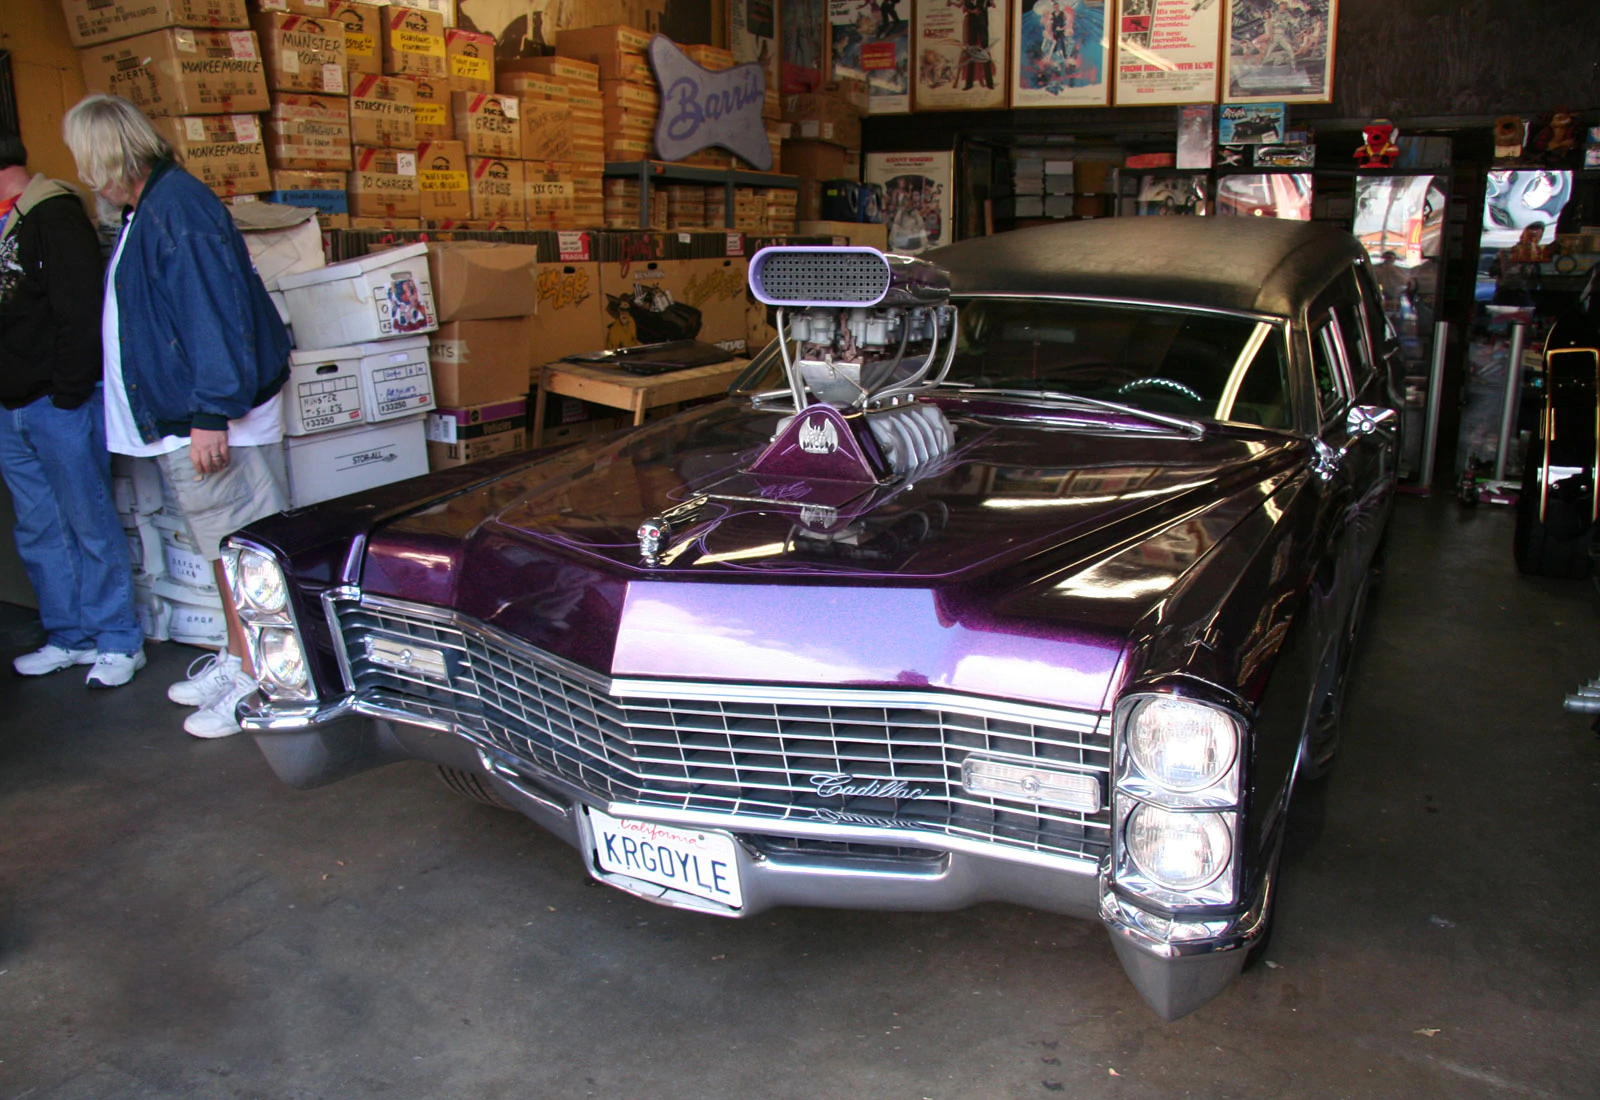 Barris' Kargoyle hearse, complete, photo 06.